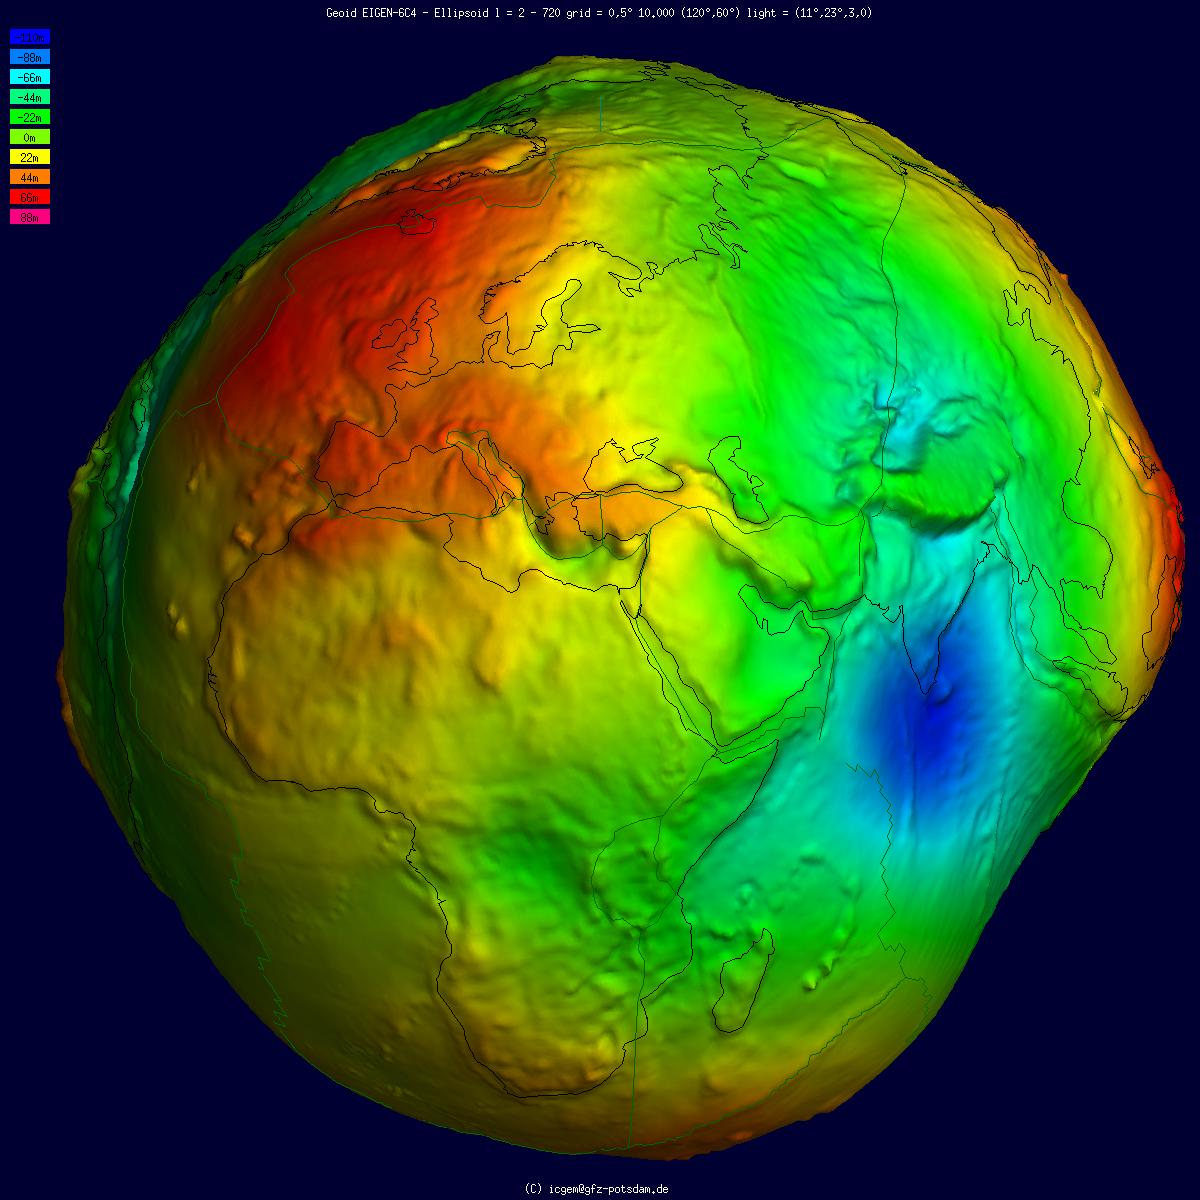 Geoid undulation in false color, shaded relief and vertical exaggeration (10000 scale factor).